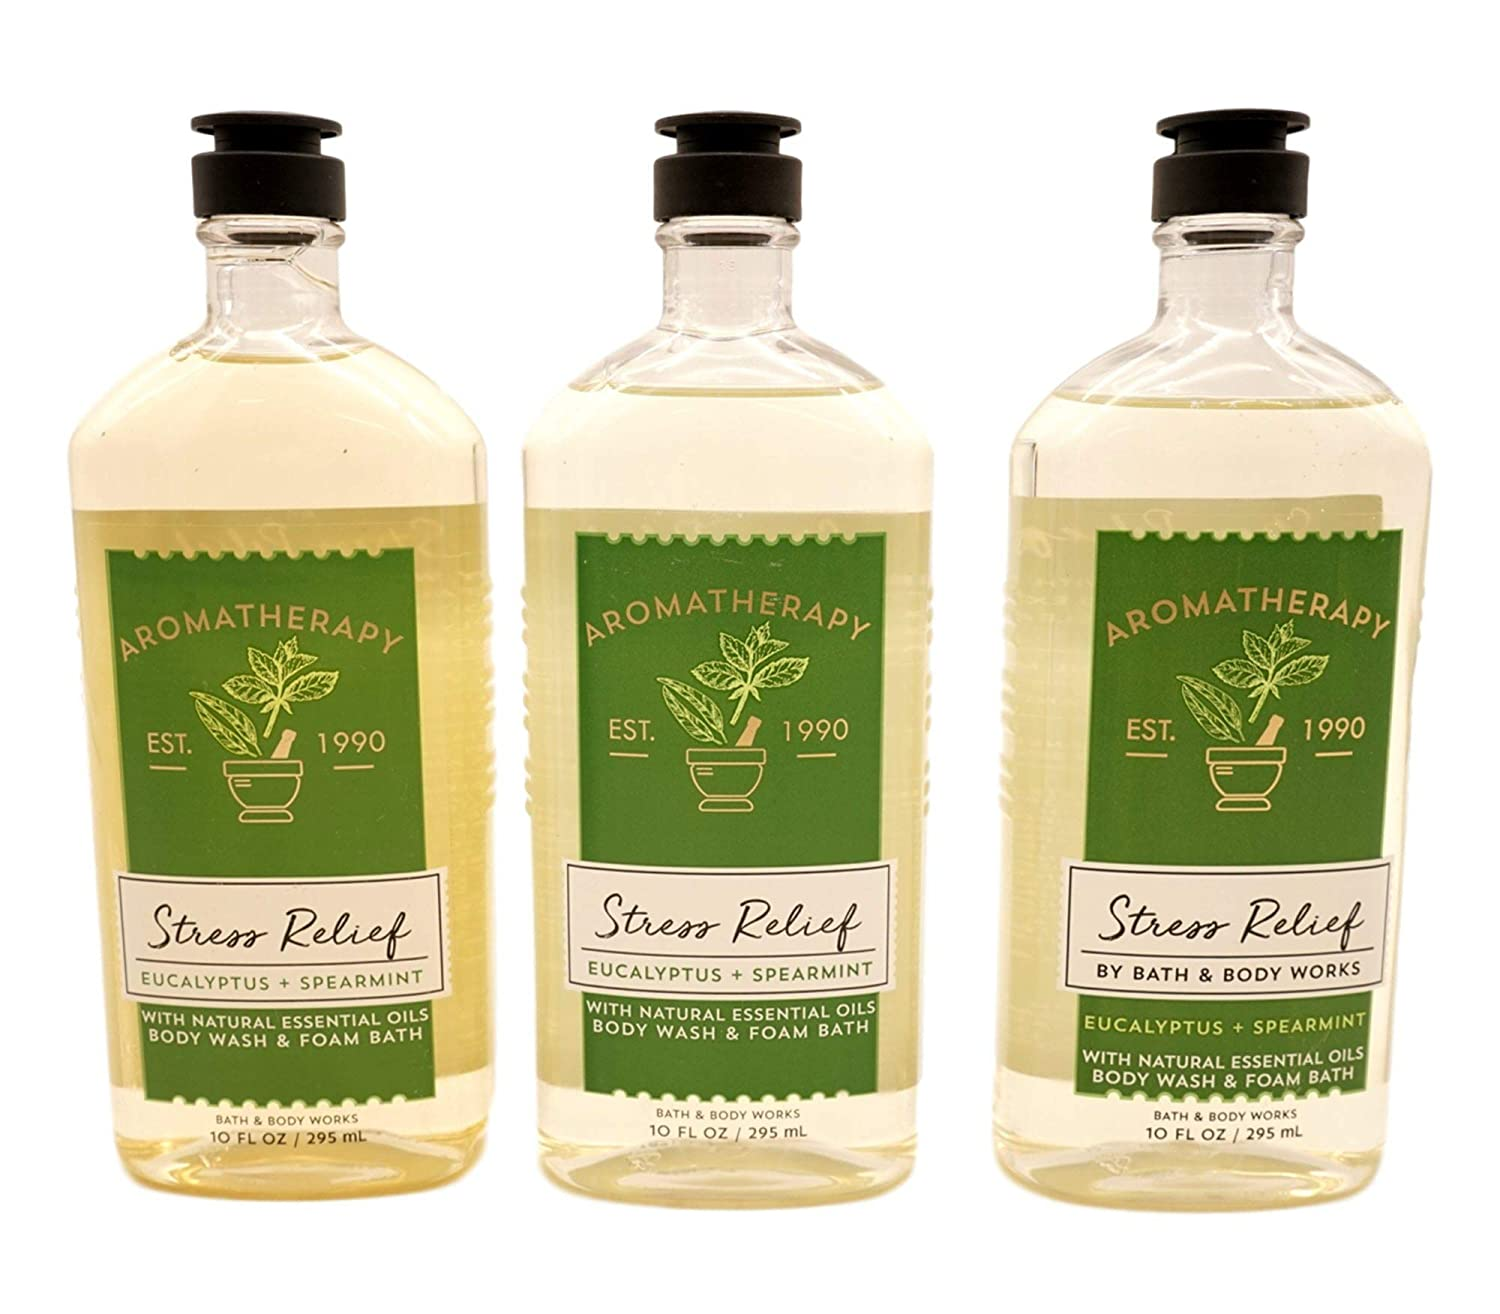 Bath & Body Works Aromatherapy Eucalyptus Spearmint Stress Relief Body Wash & Foam Bath, 10 fl oz per Bottle (3 Pack) : Bath And Shower Gels : Beauty